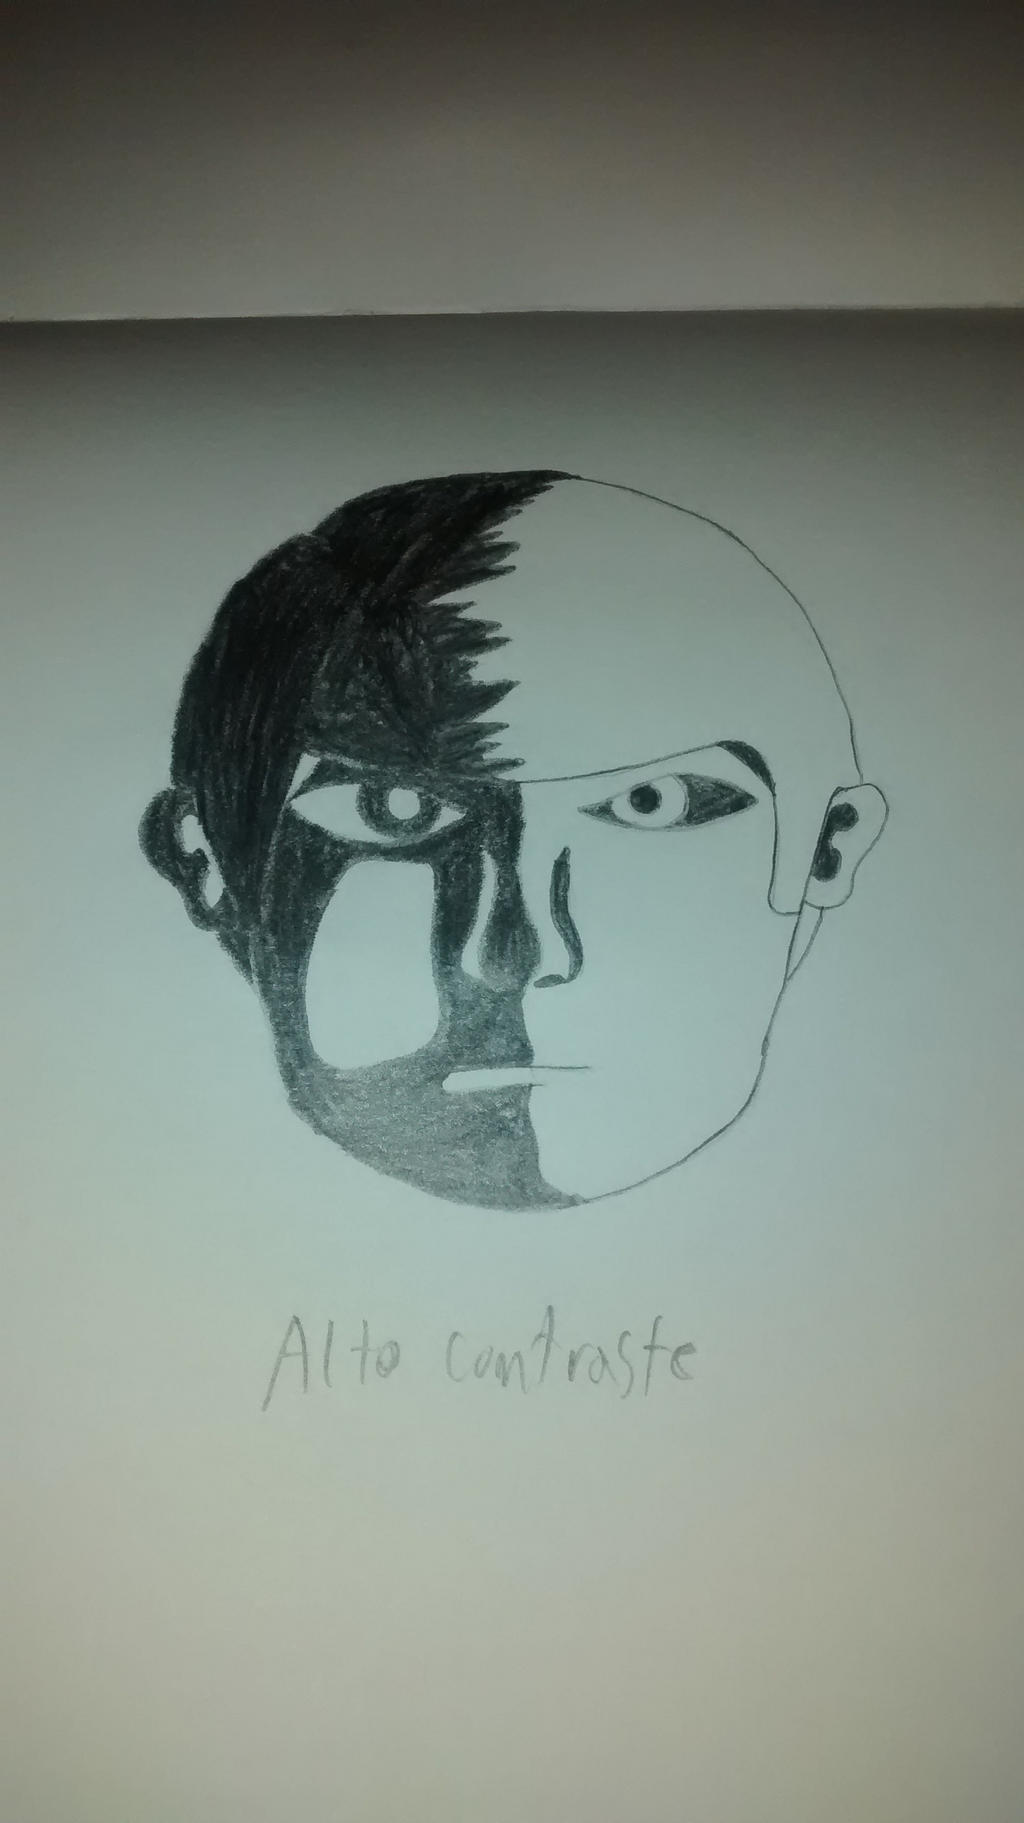 High contrast face by Liyito